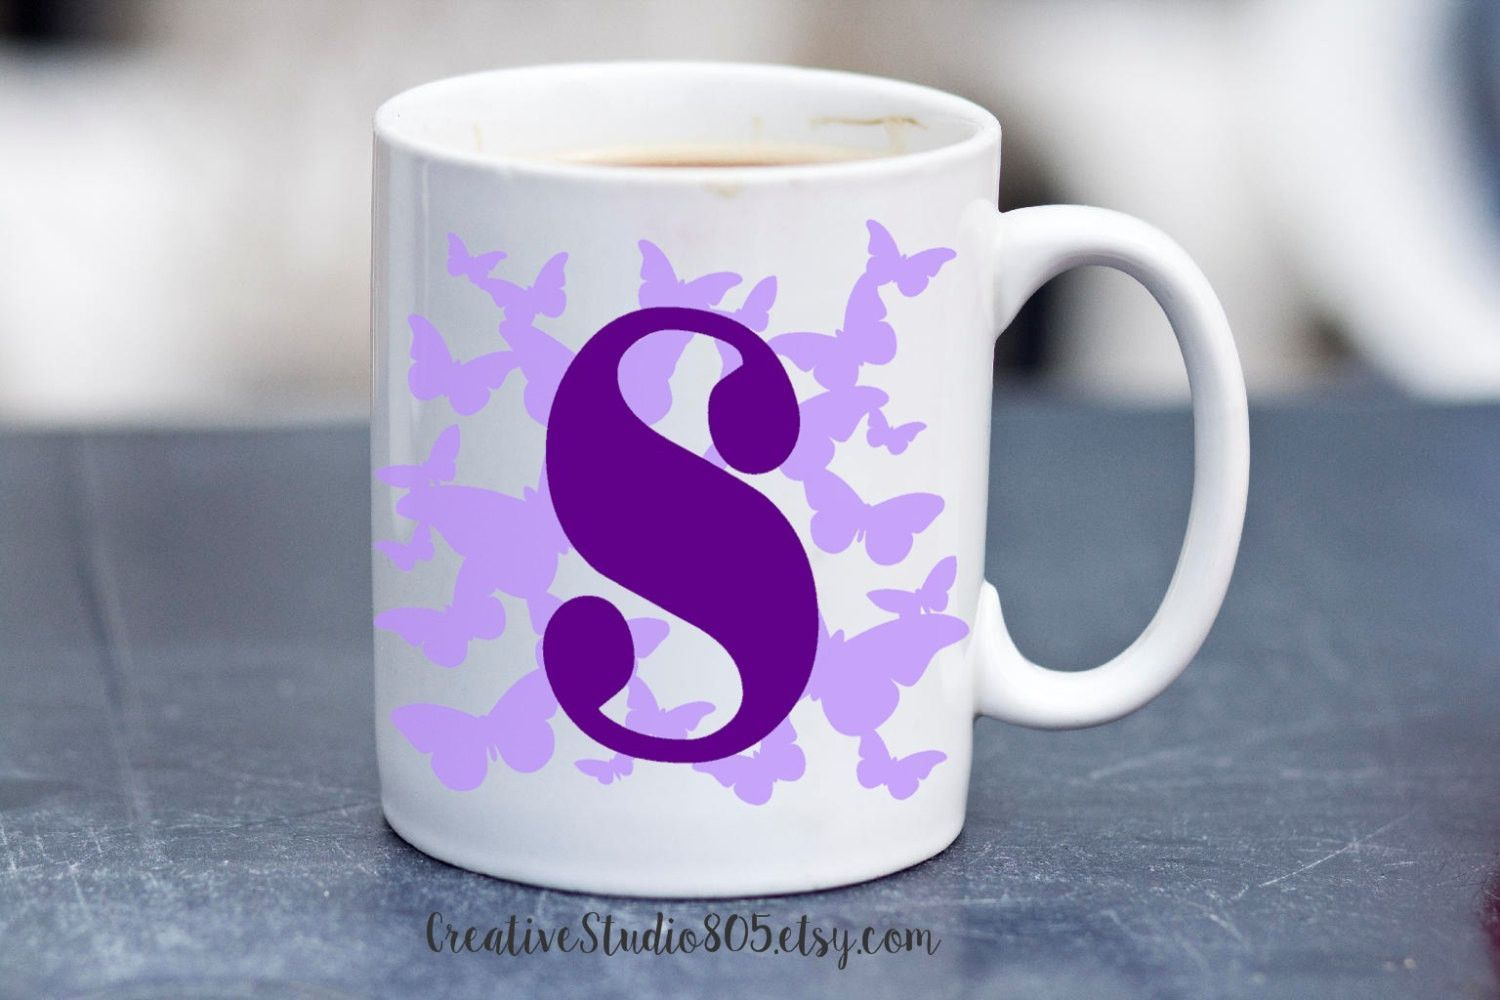 Each One Is Slightly Diffe To Add The Uniqueness Of Gl Monogram Coffee Mug Personalized